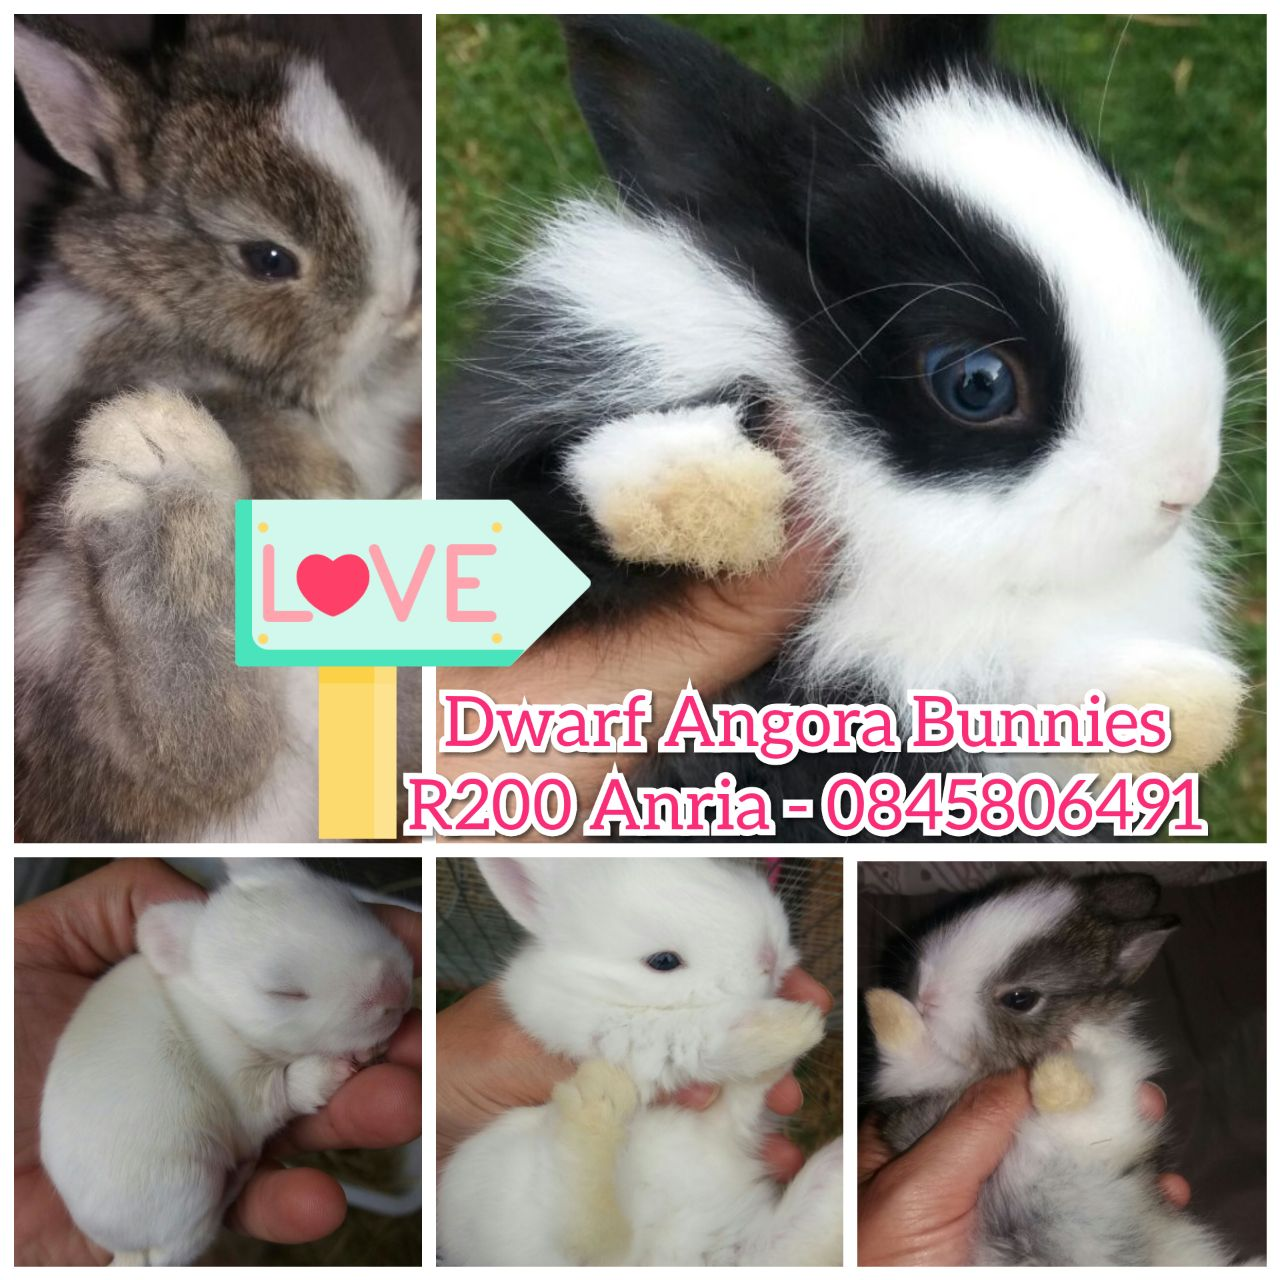 Dwarf angora (jersey wooly) bunnies for sale - very cute!